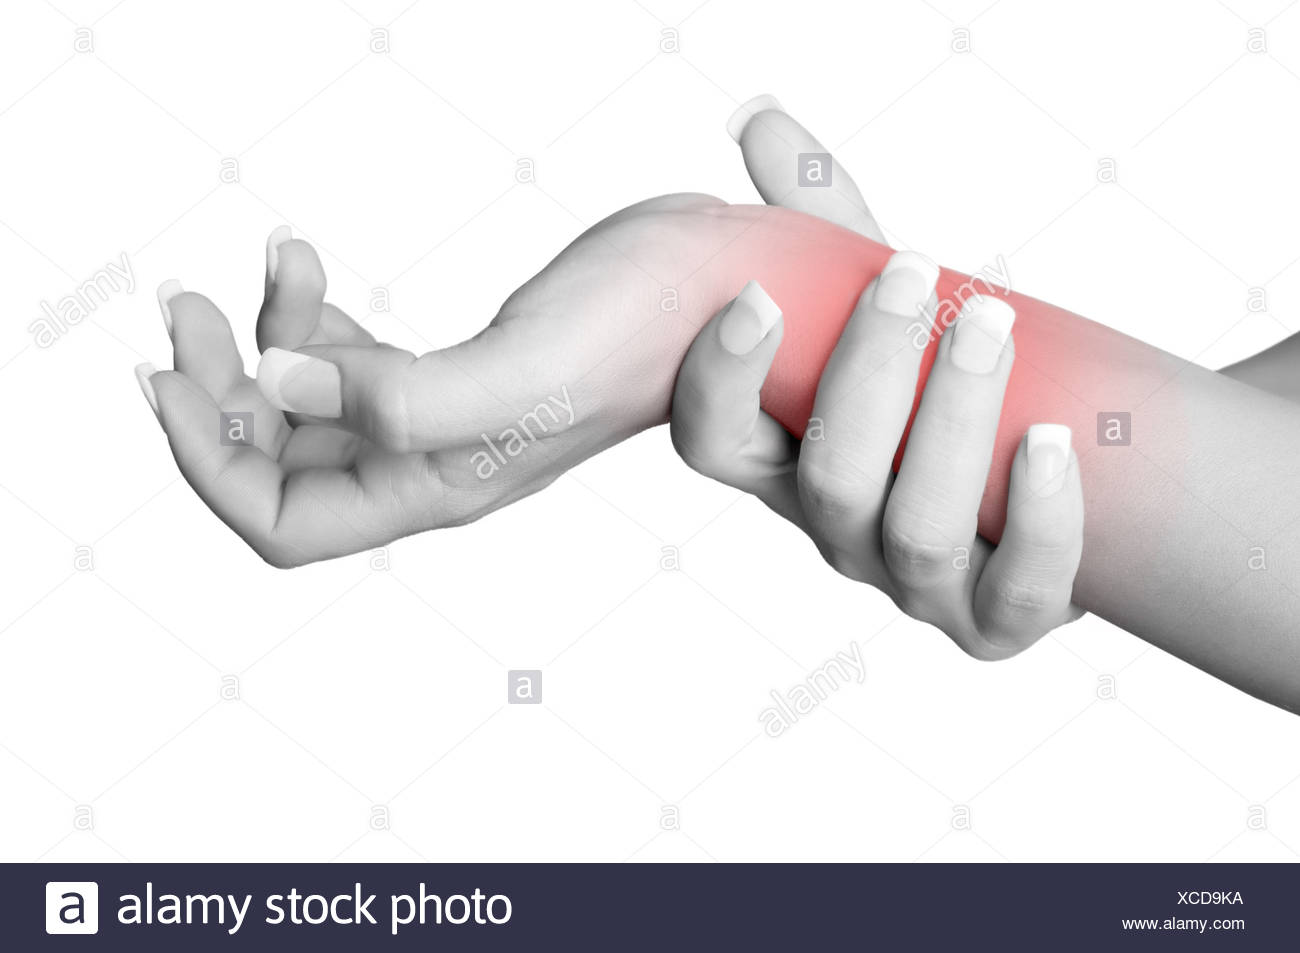 Wrist Pain - Stock Image